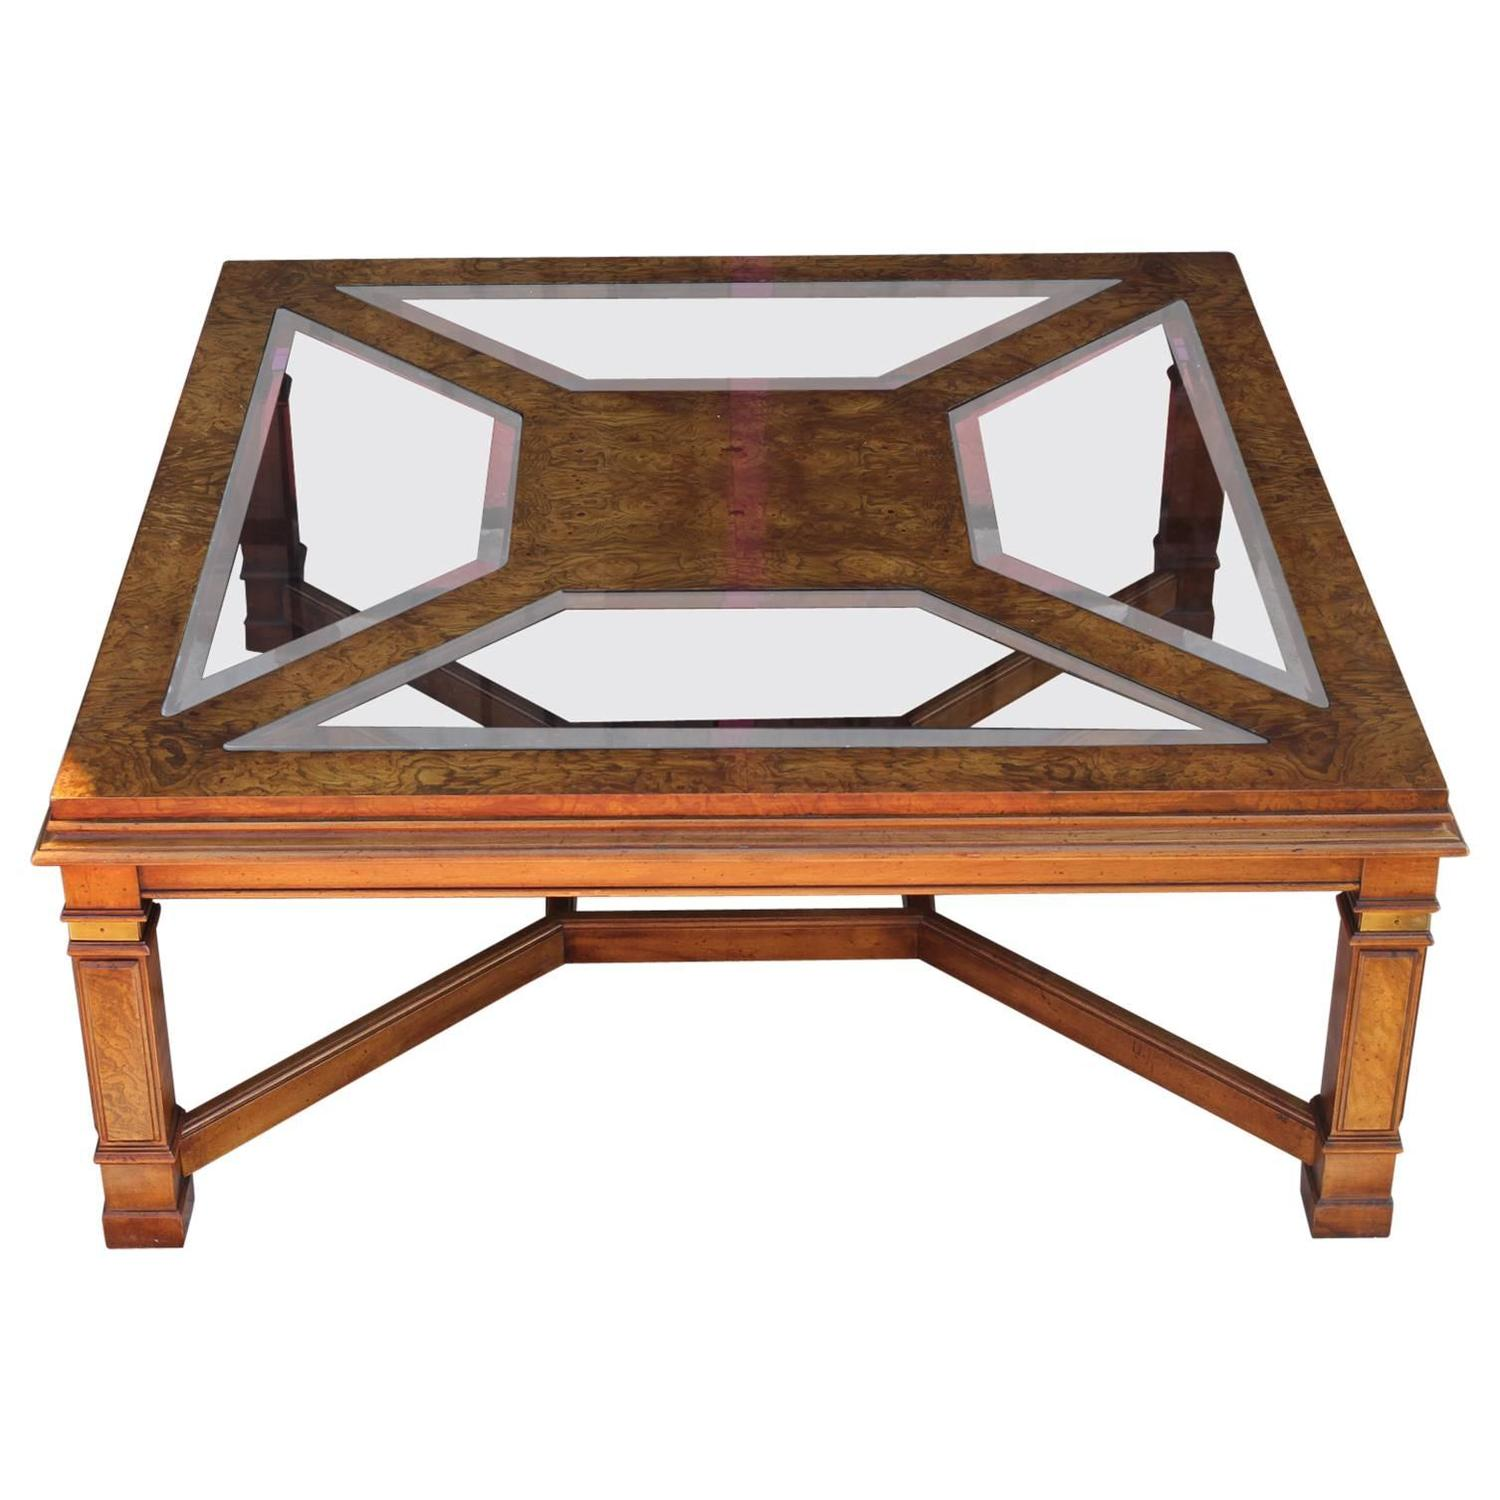 Elegant Burl Brass And Smoked Glass Square Coffee Table For Sale At 1stdibs